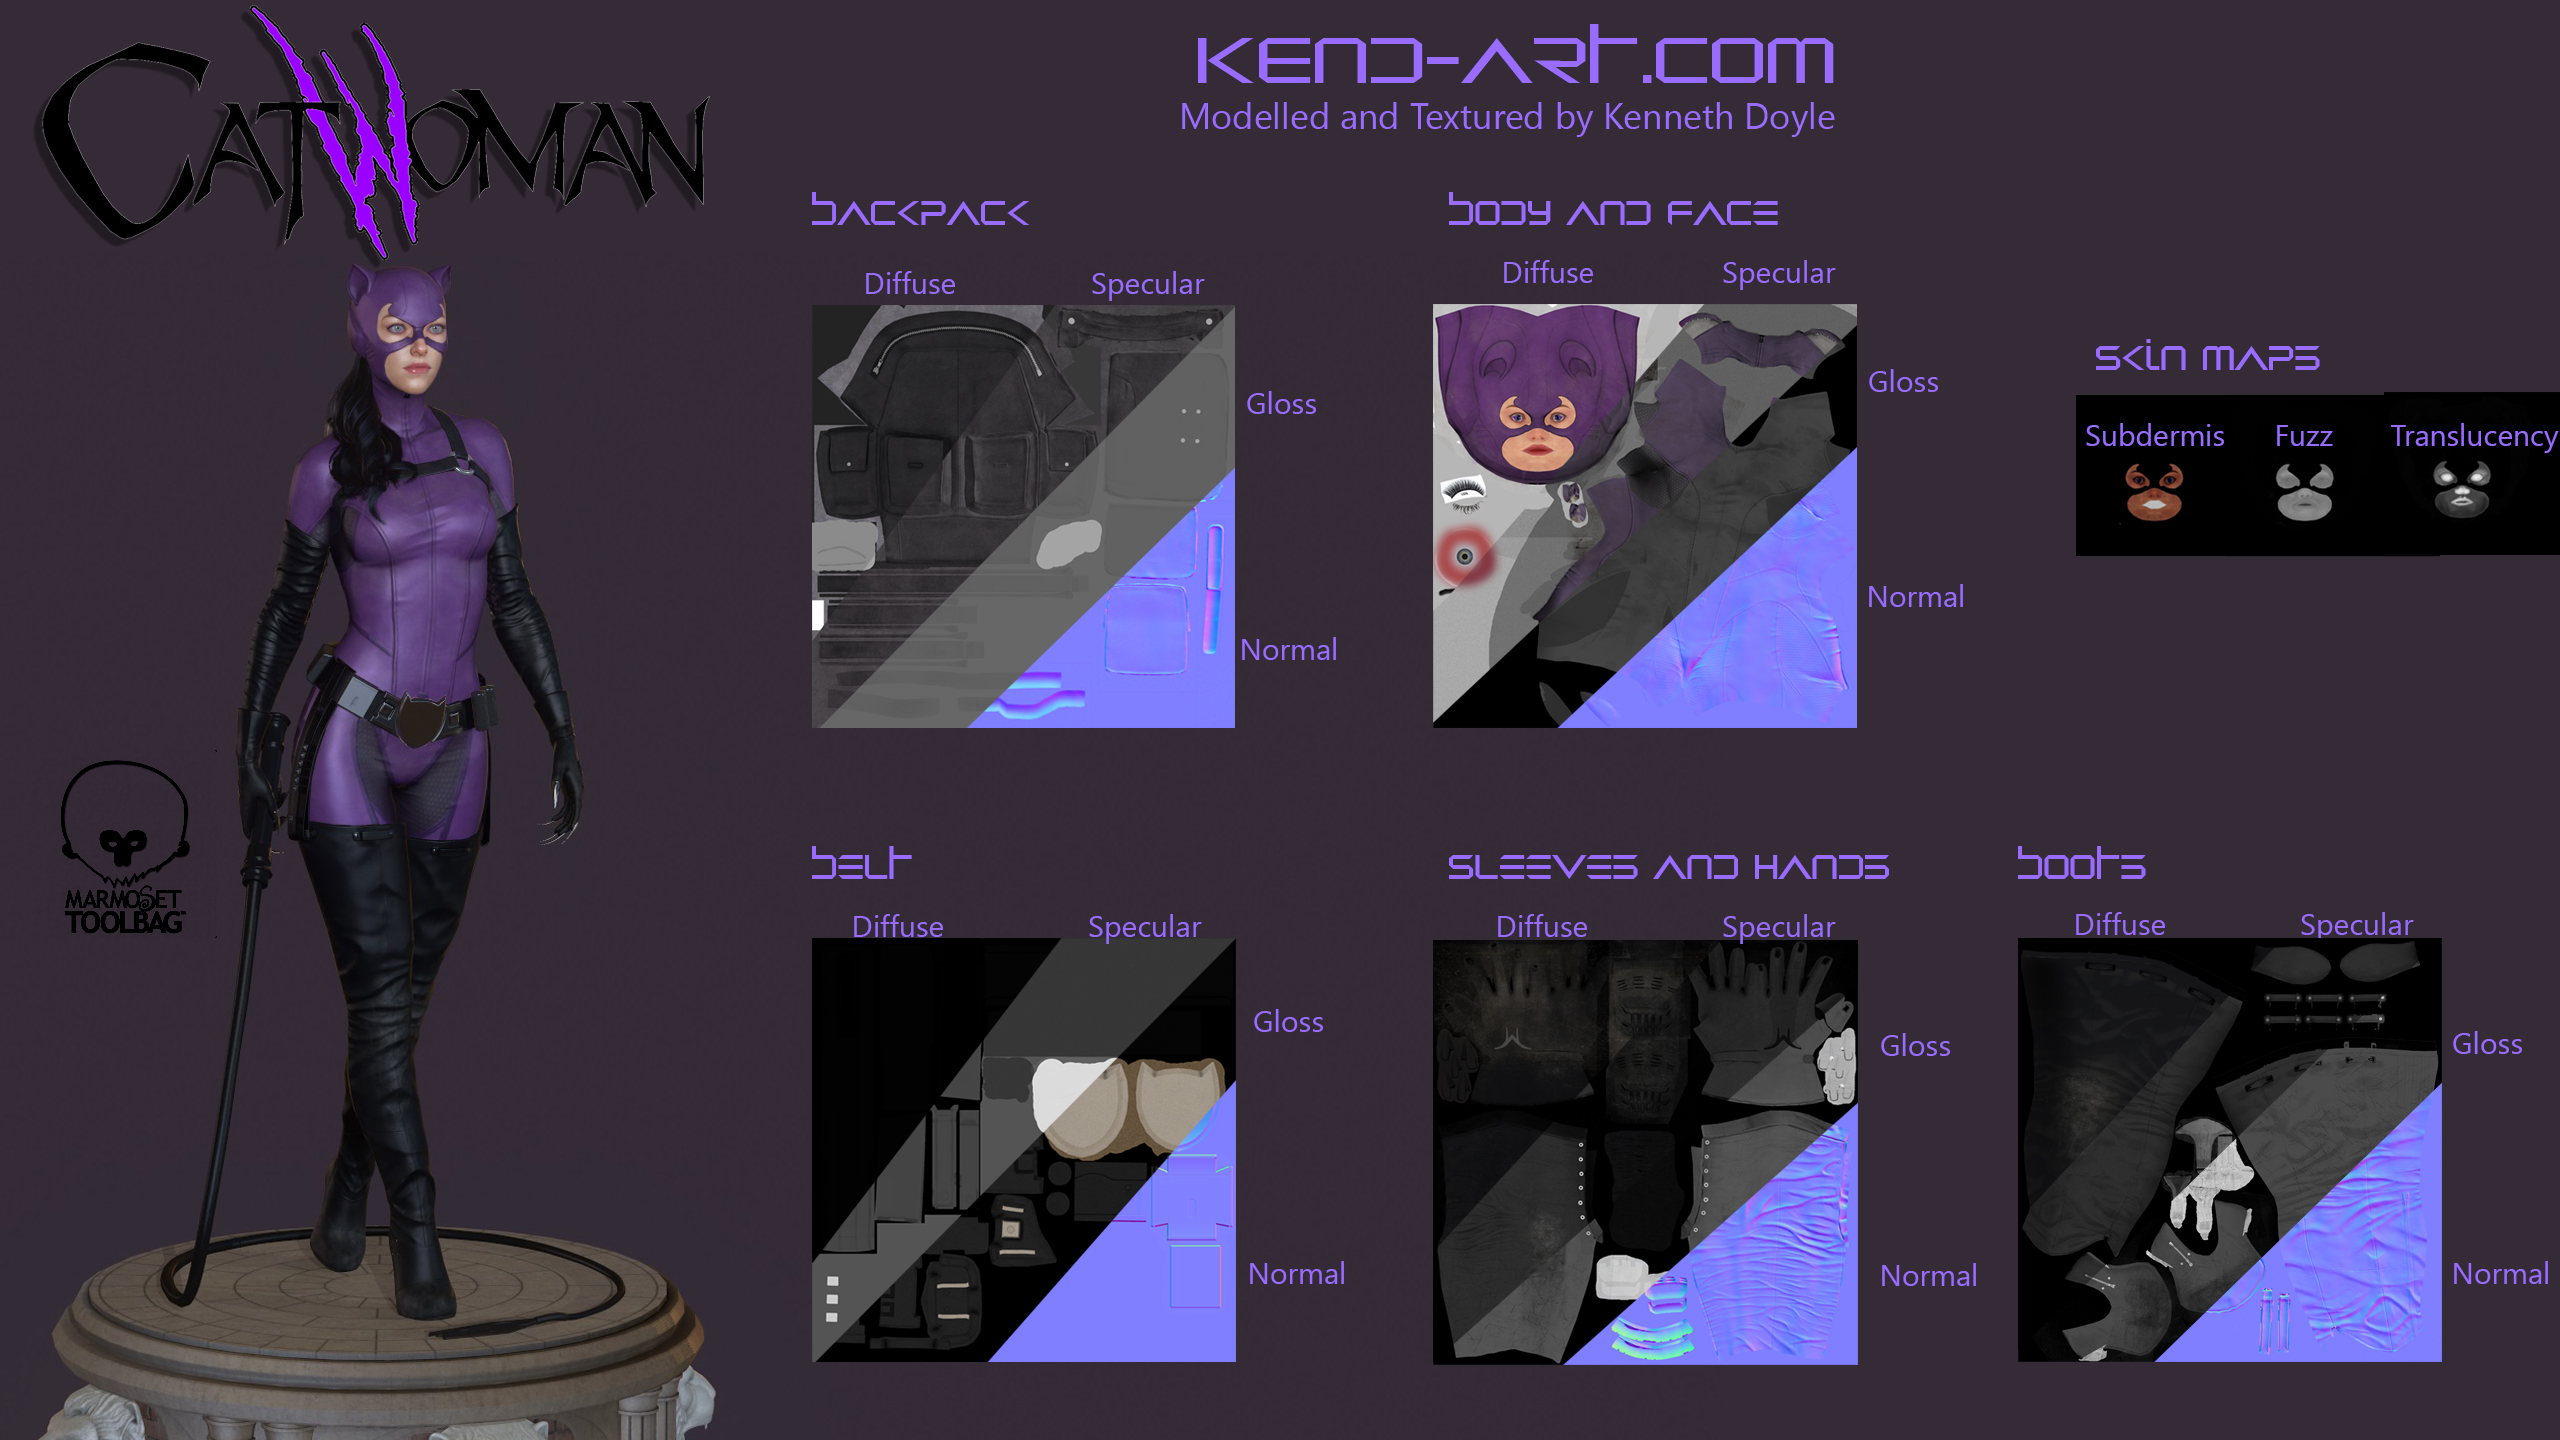 catwoman___texture_maps_by_kdoyle9-d7vpg8x.jpg